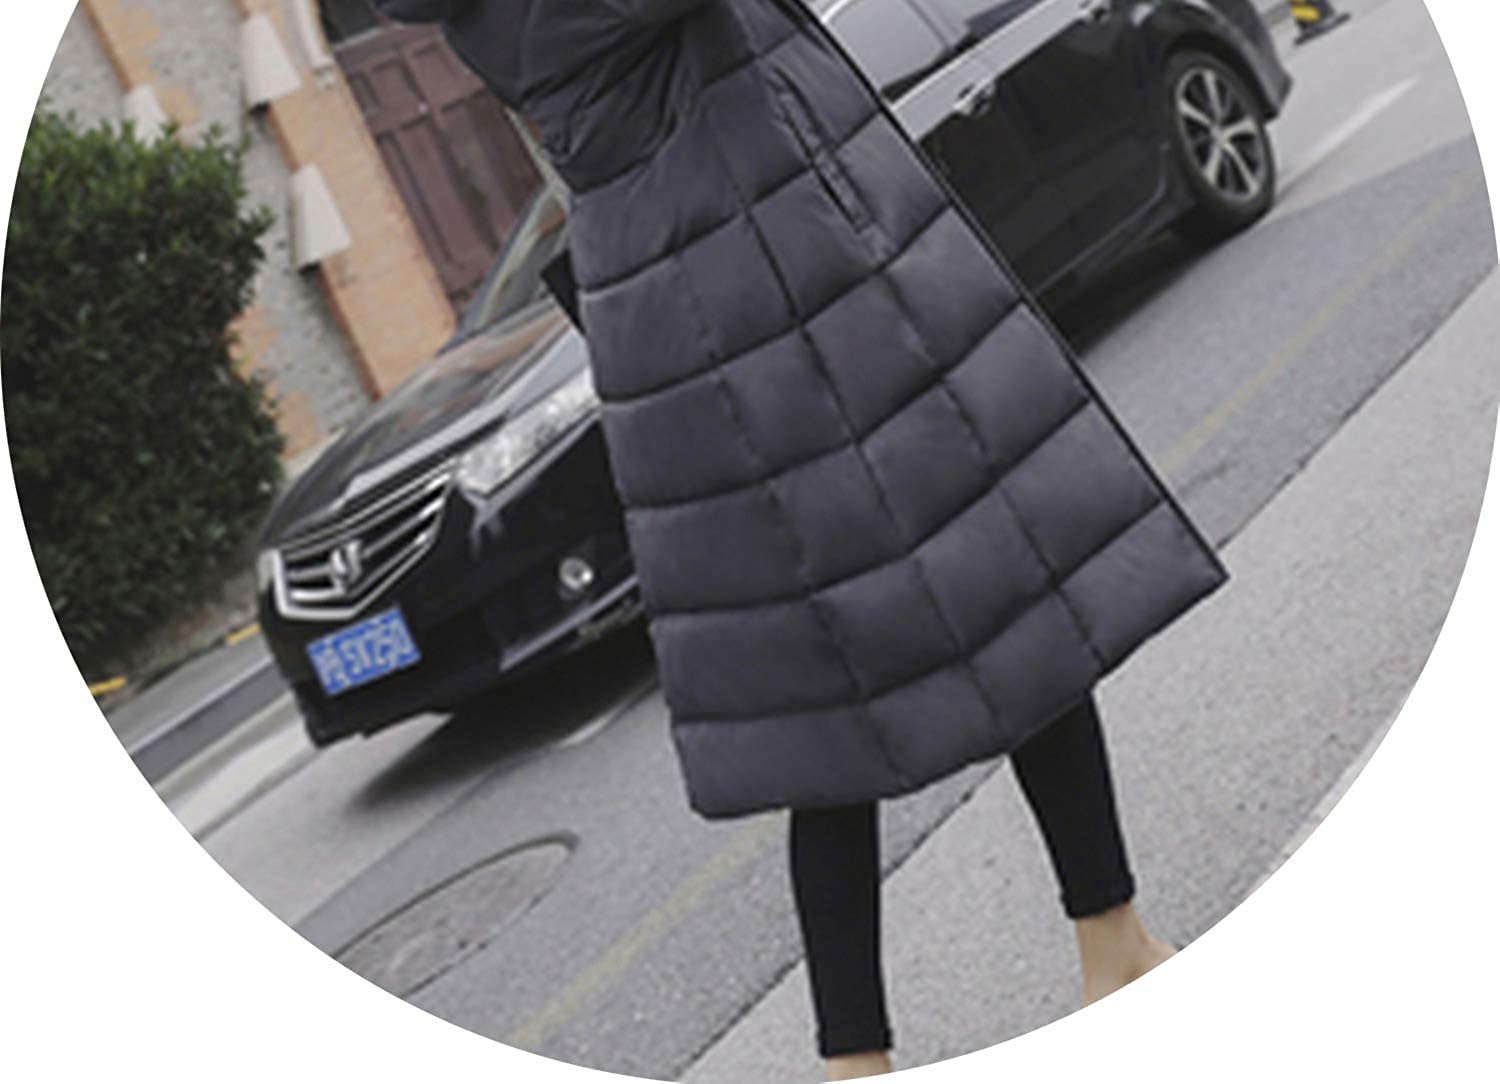 2018 Winter Fashion Woman Park Coat Long Hooded Section Ultra Light Duck Down Jacket